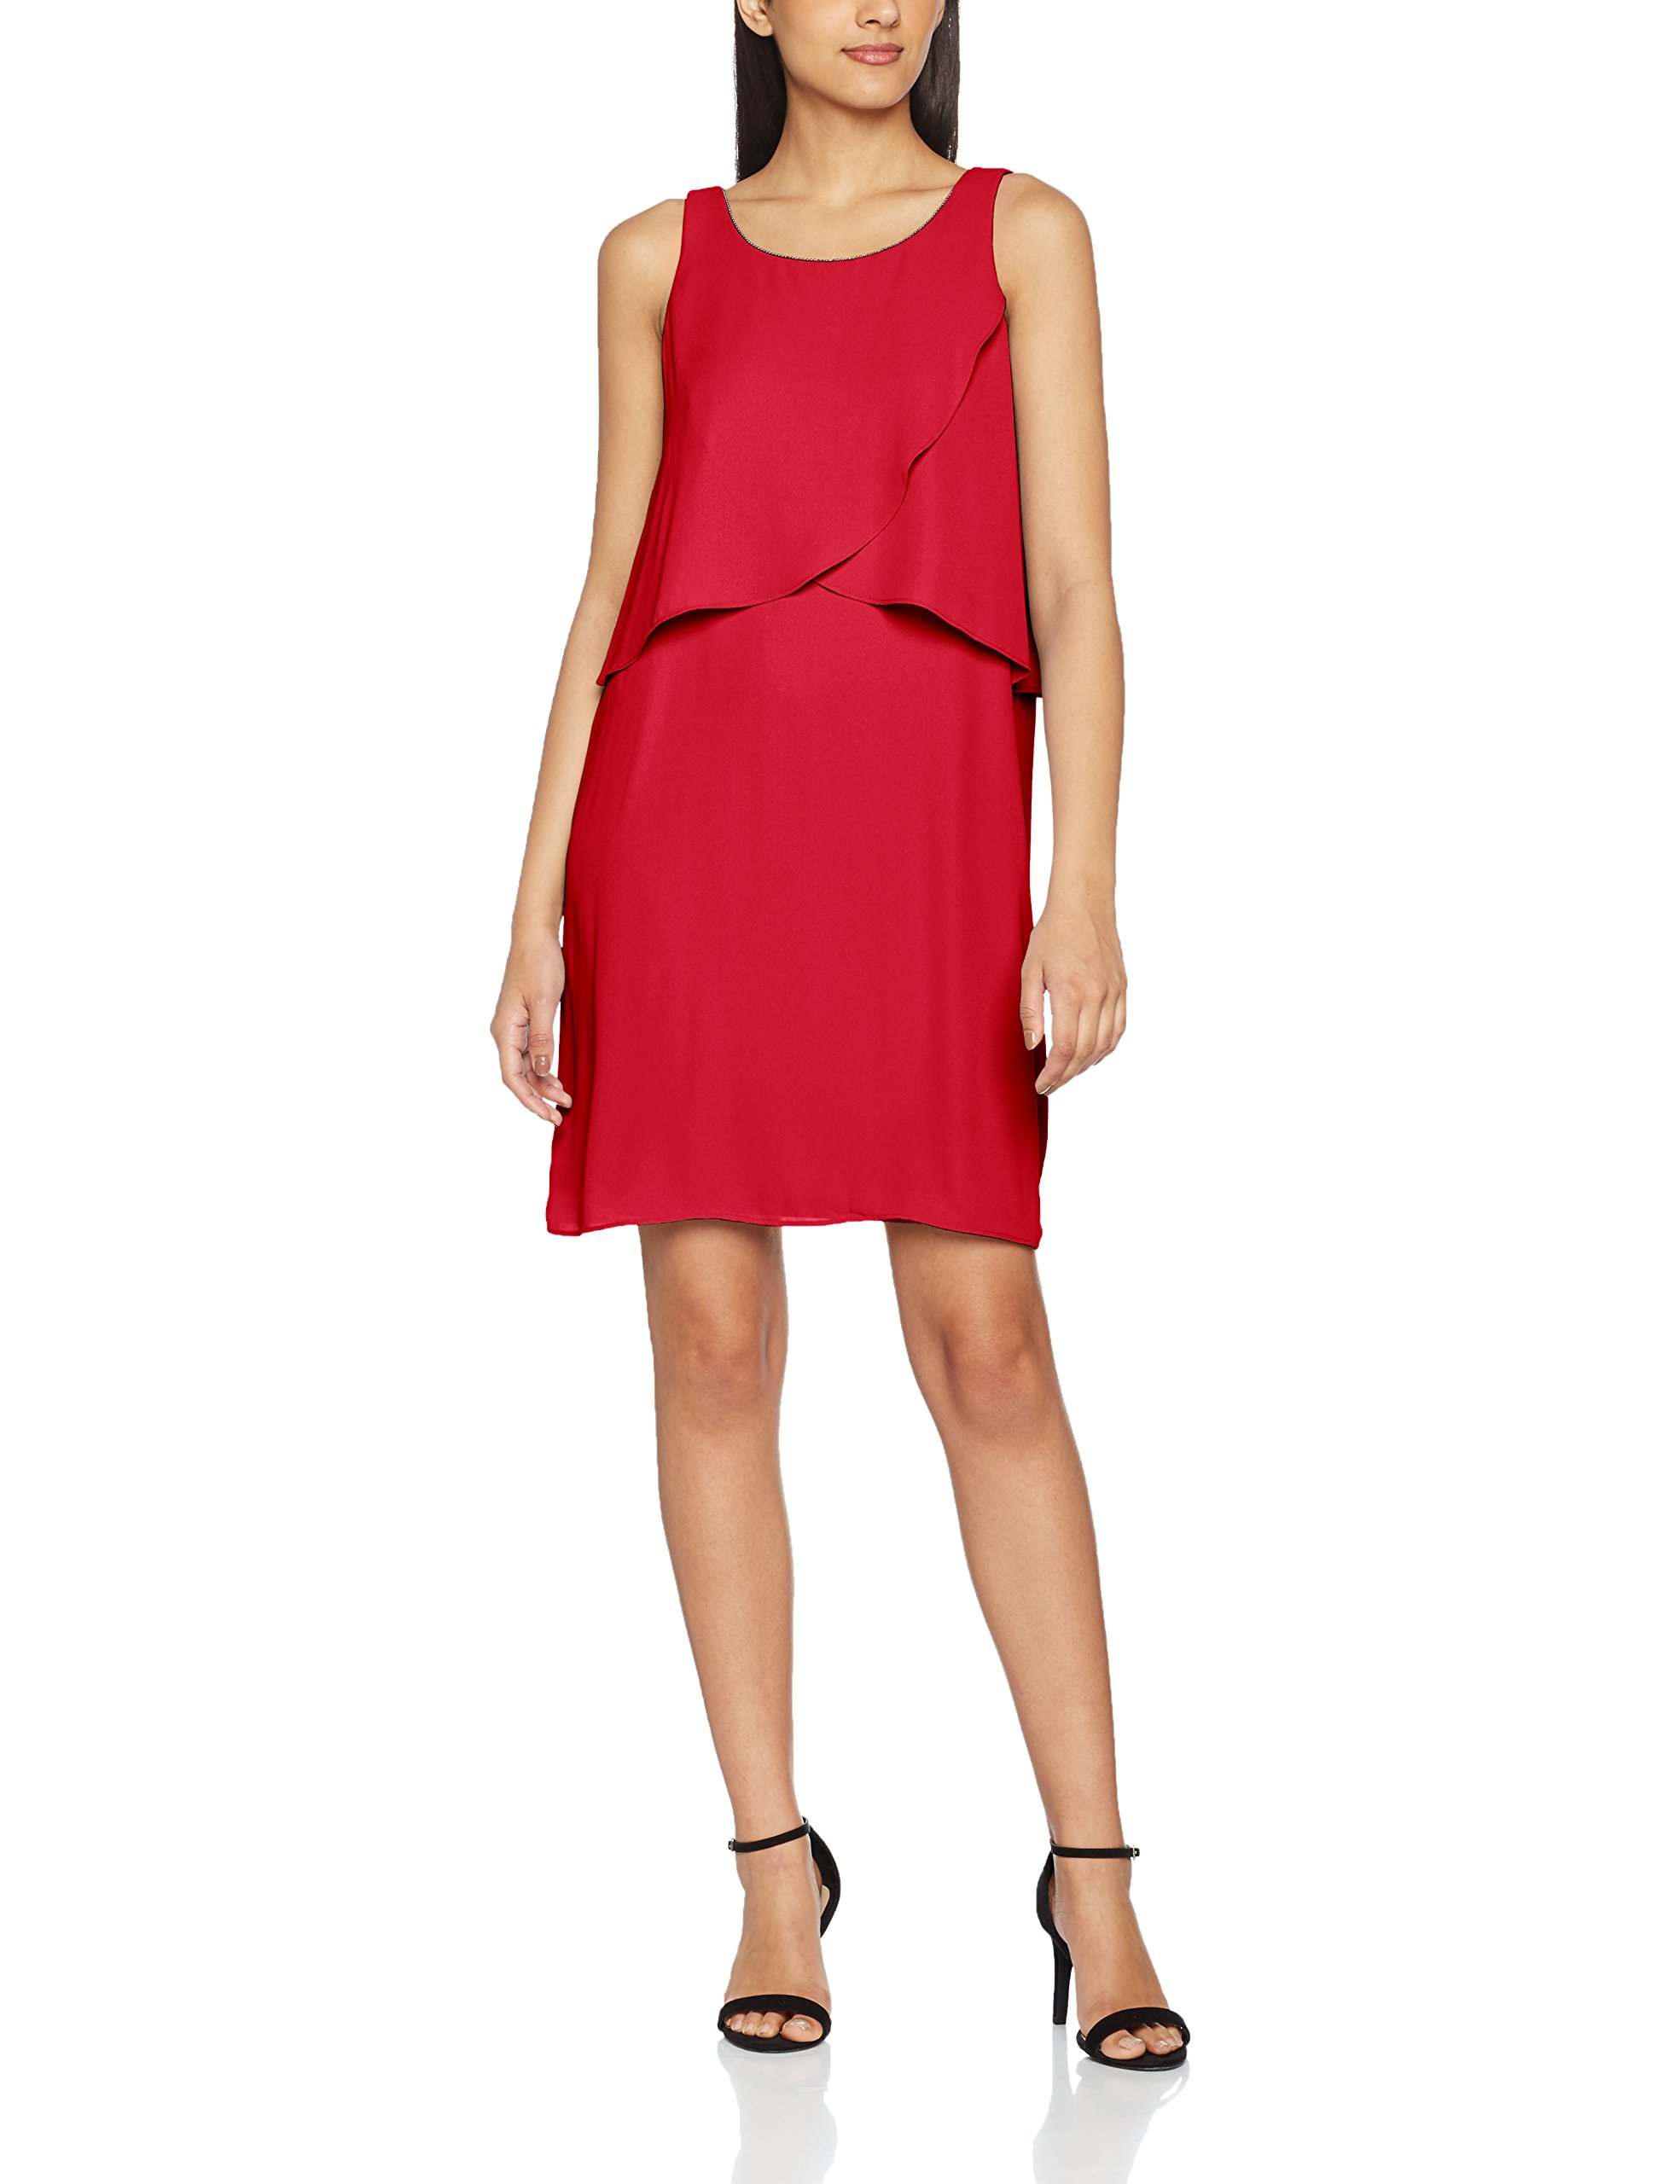 234 Collection Femme 027eo1e039 Esprit RobeRougered gbf67y